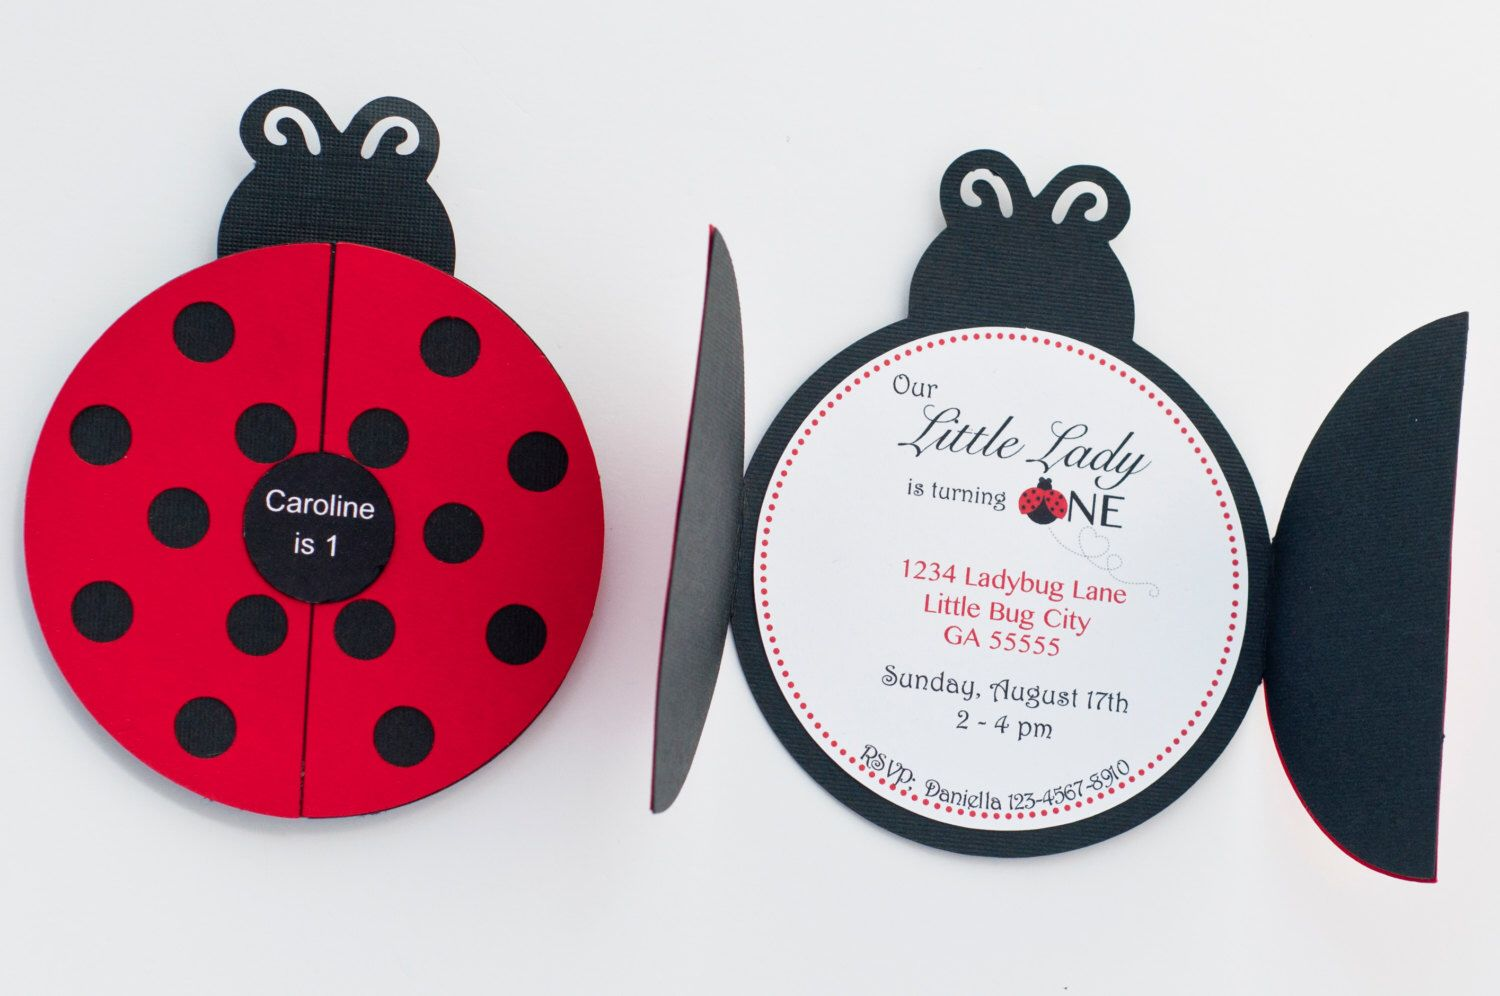 bday party invitation mail%0A Set of     Ladybug Party Invitation  Ladybug  st Birthday Party  Ladybug  Invitation by